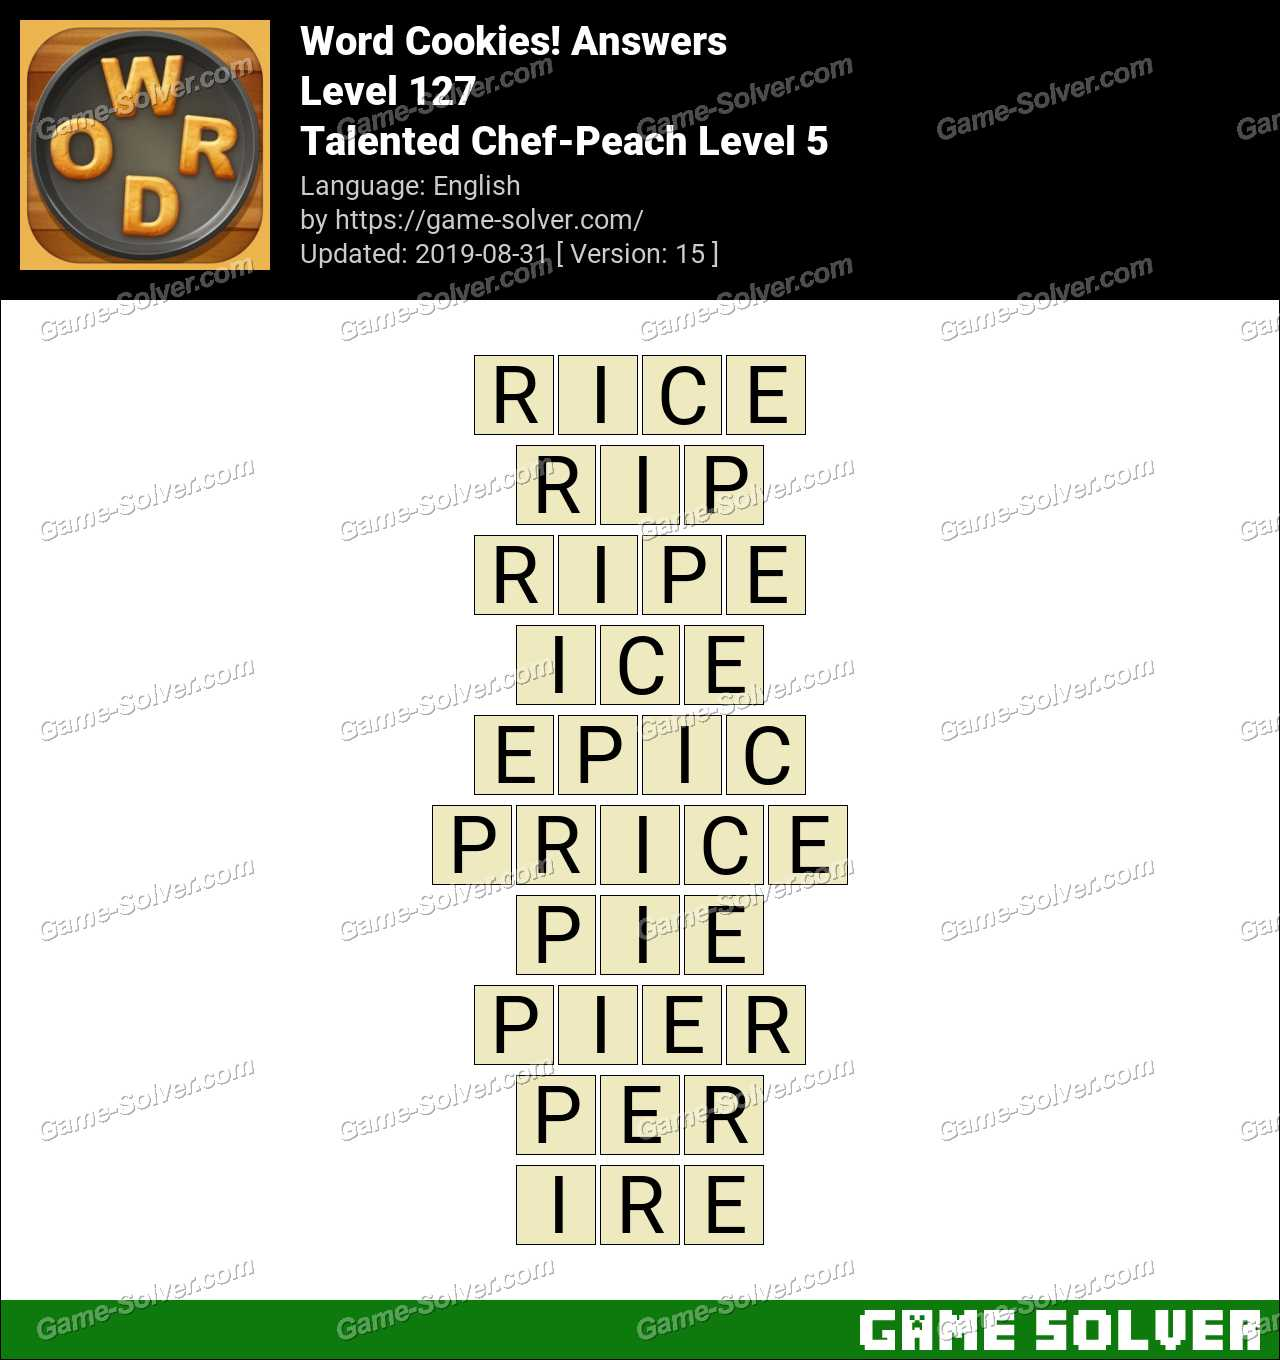 Word Cookies Talented Chef-Peach Level 5 Answers